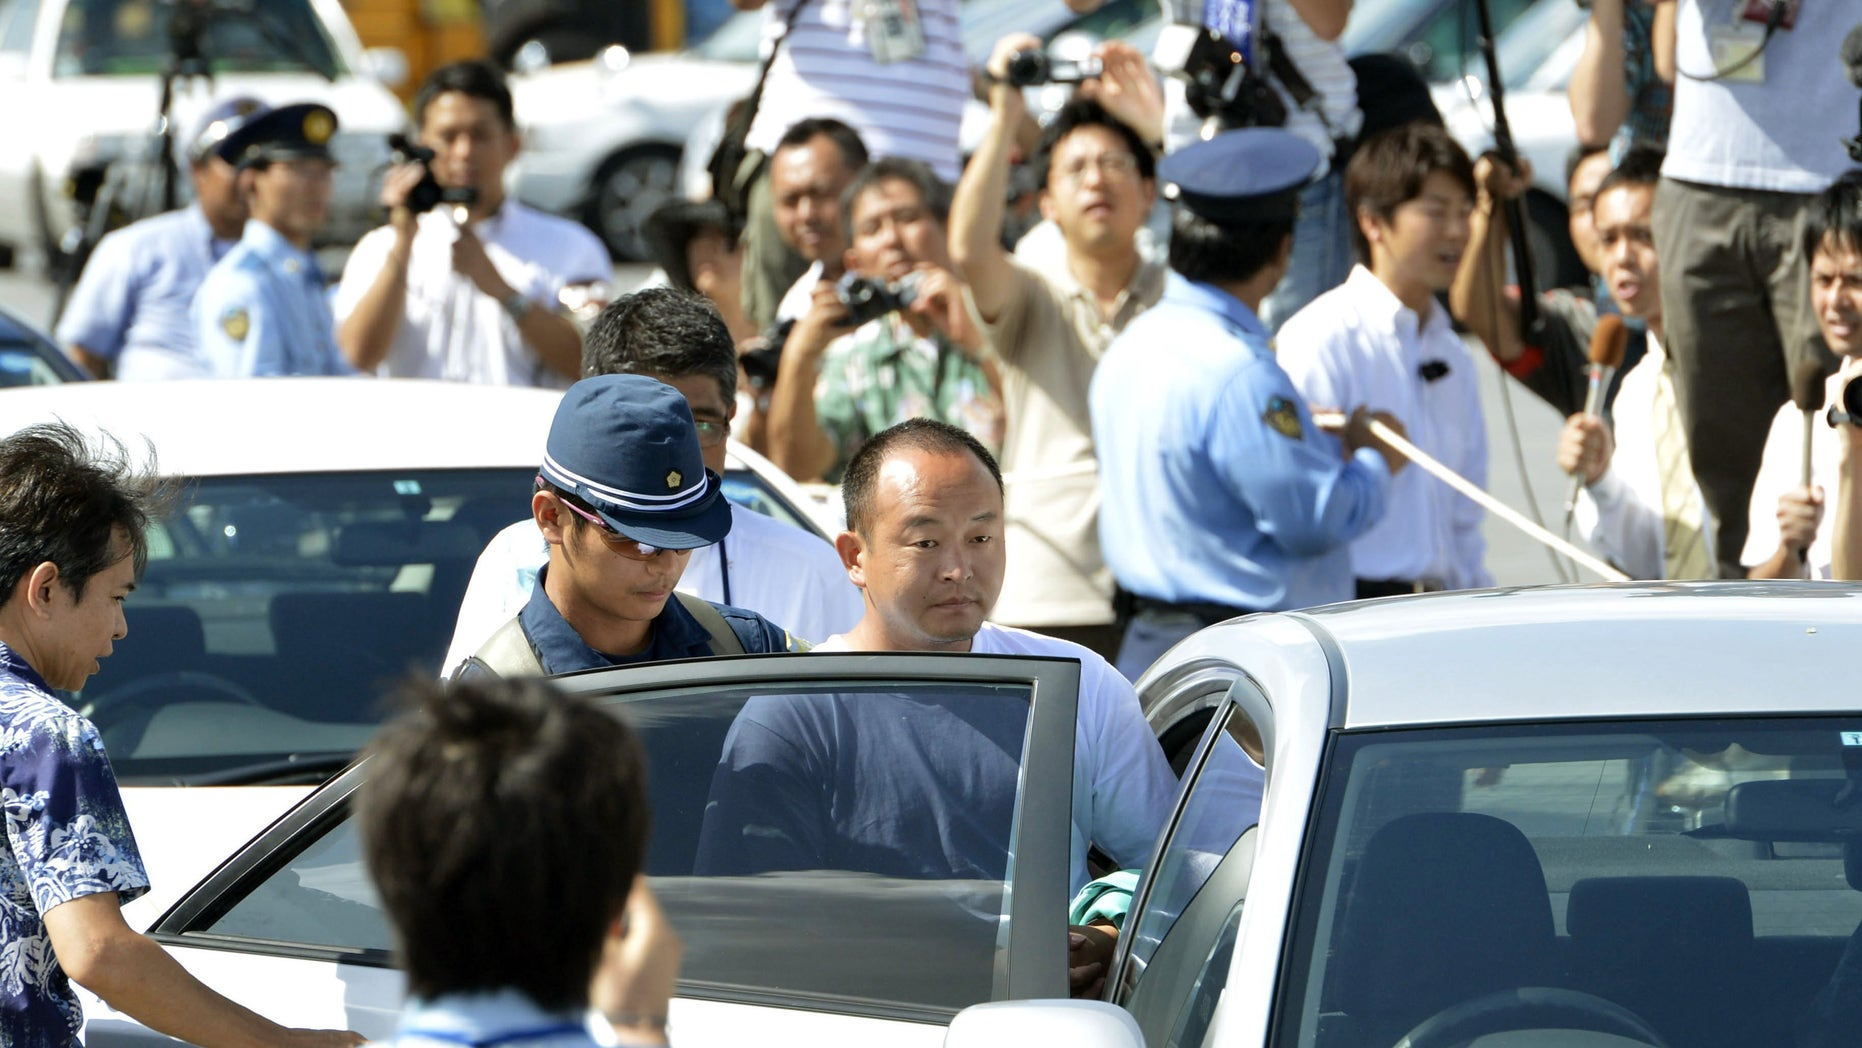 Aug. 16, 2012: An activist, center, is transferred after being arrested for landing on a set of islets known as Senkaku in Japanese and Diaoyu in Chinese, at a port in Naha, Okinawa prefecture, southern Japan.